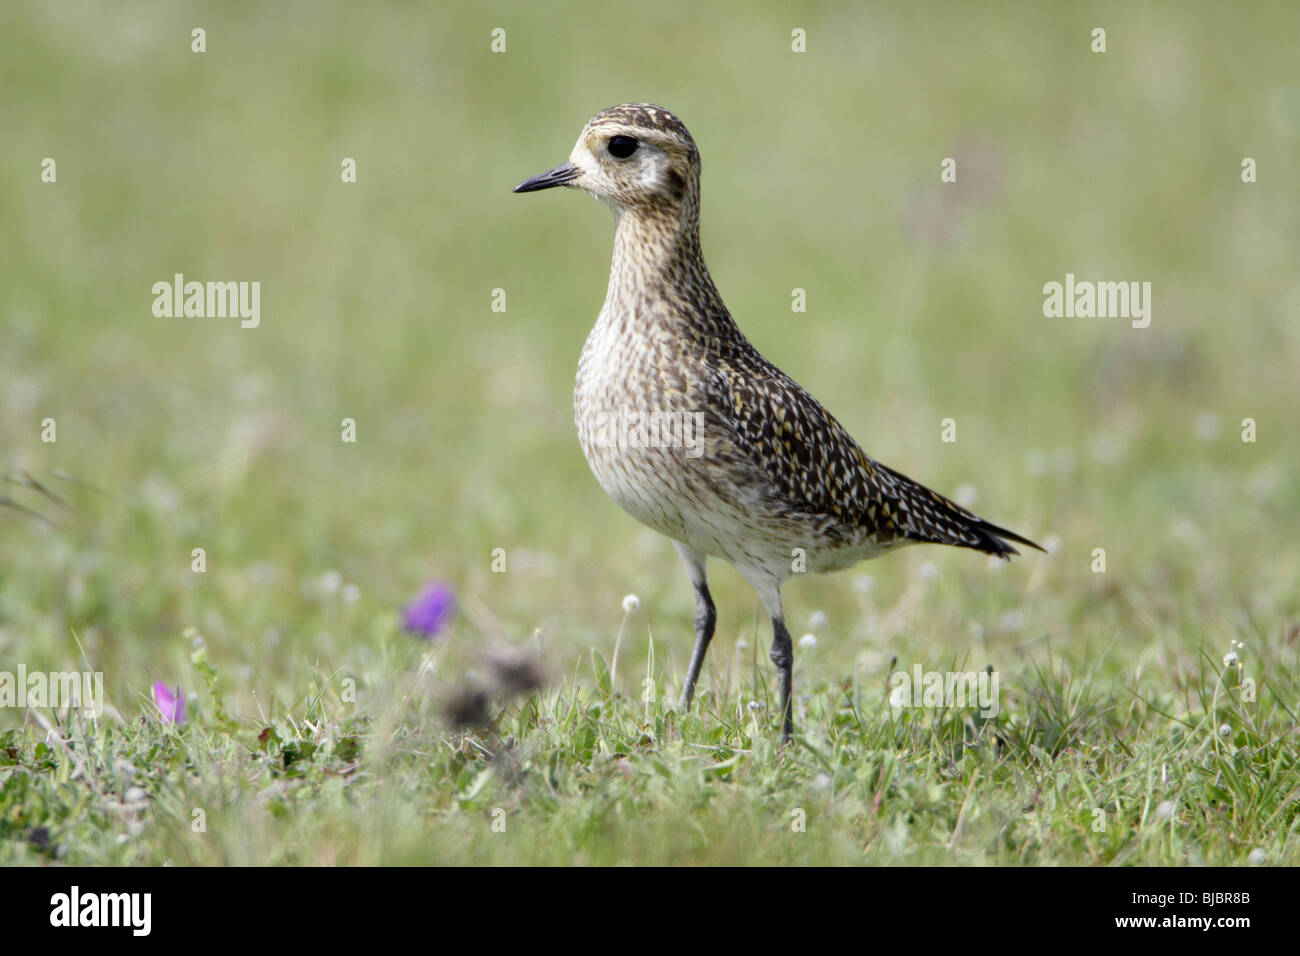 Golden Plover (Pluvialis apricaria), resting on meadow during spring migration, Portugal - Stock Image